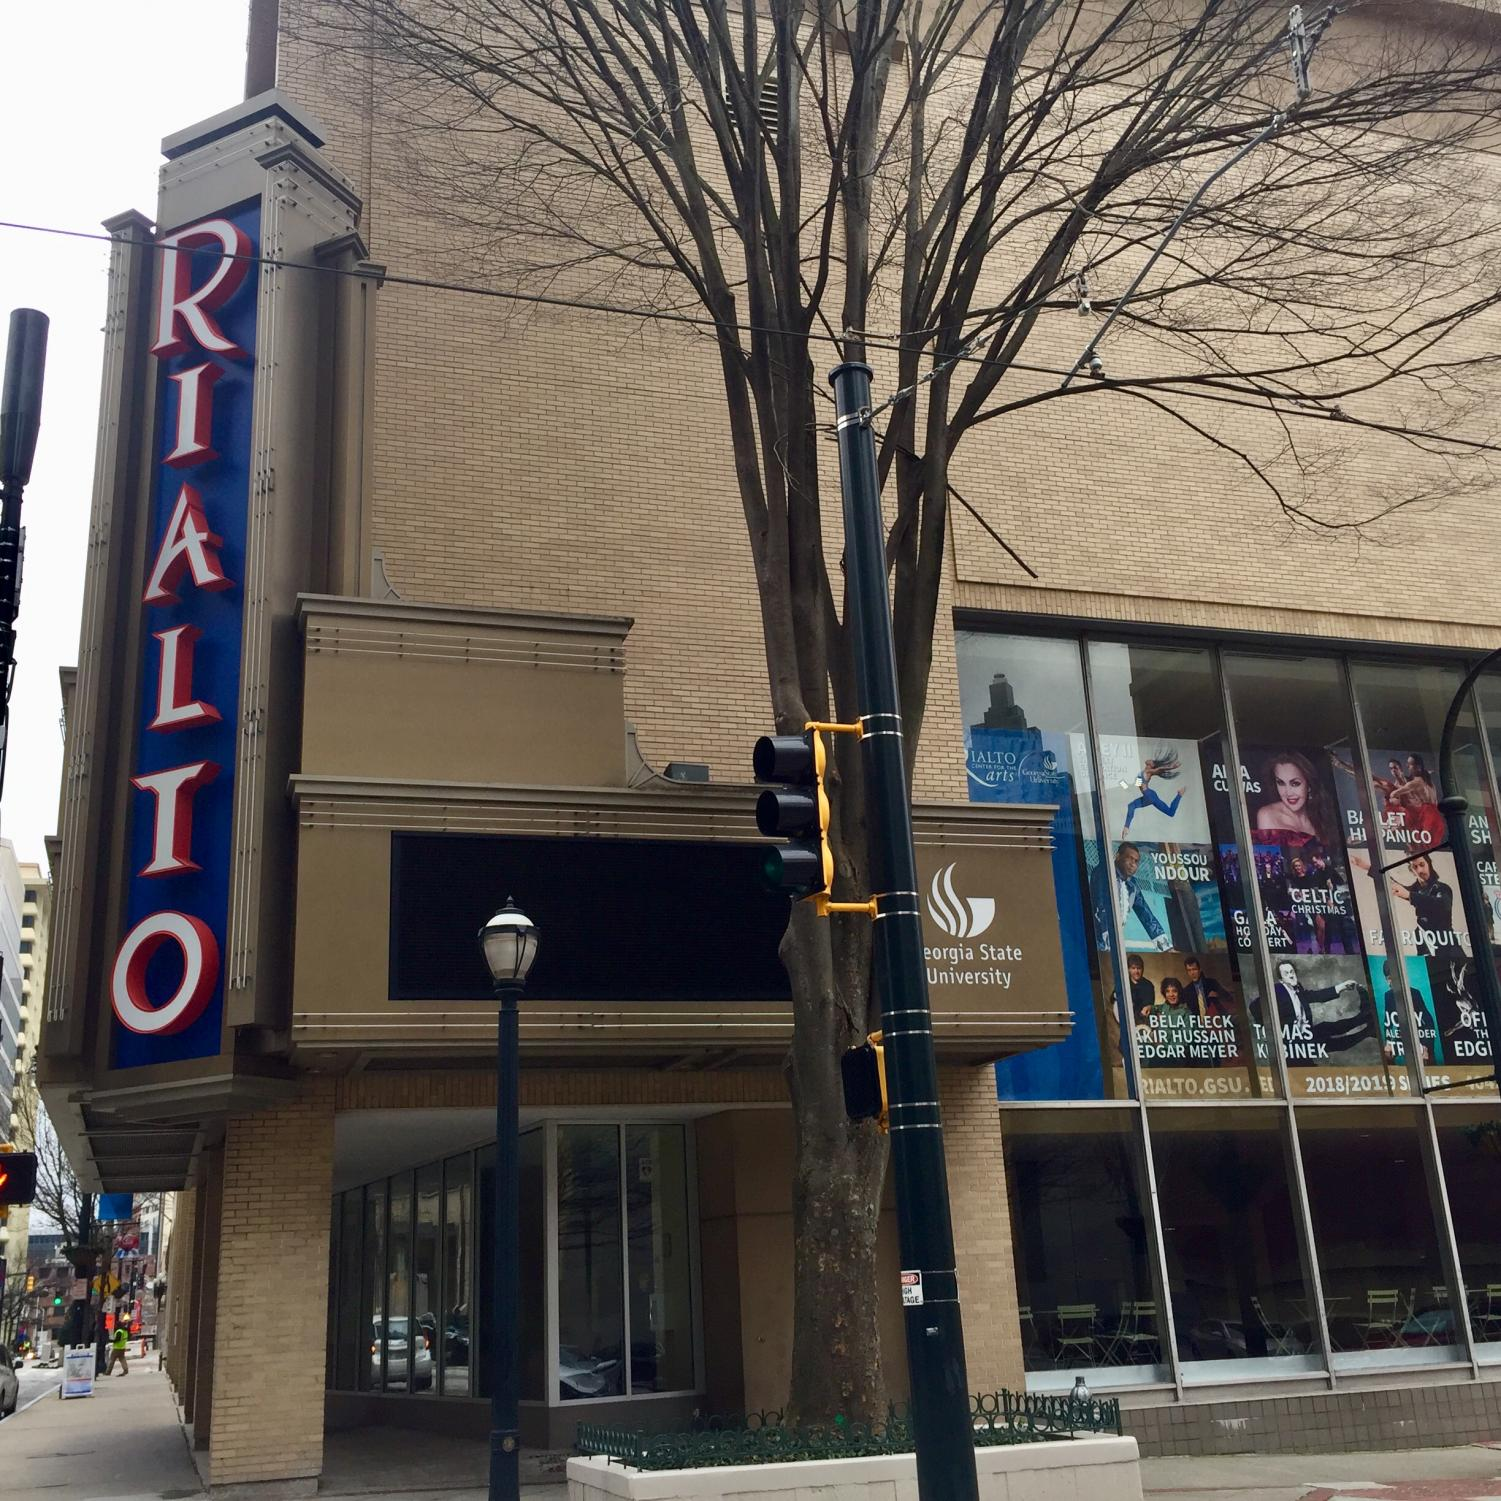 The Rialto Center for the Arts, located in downtown and owned by Georgia State University for 22 years, produces an annual series.